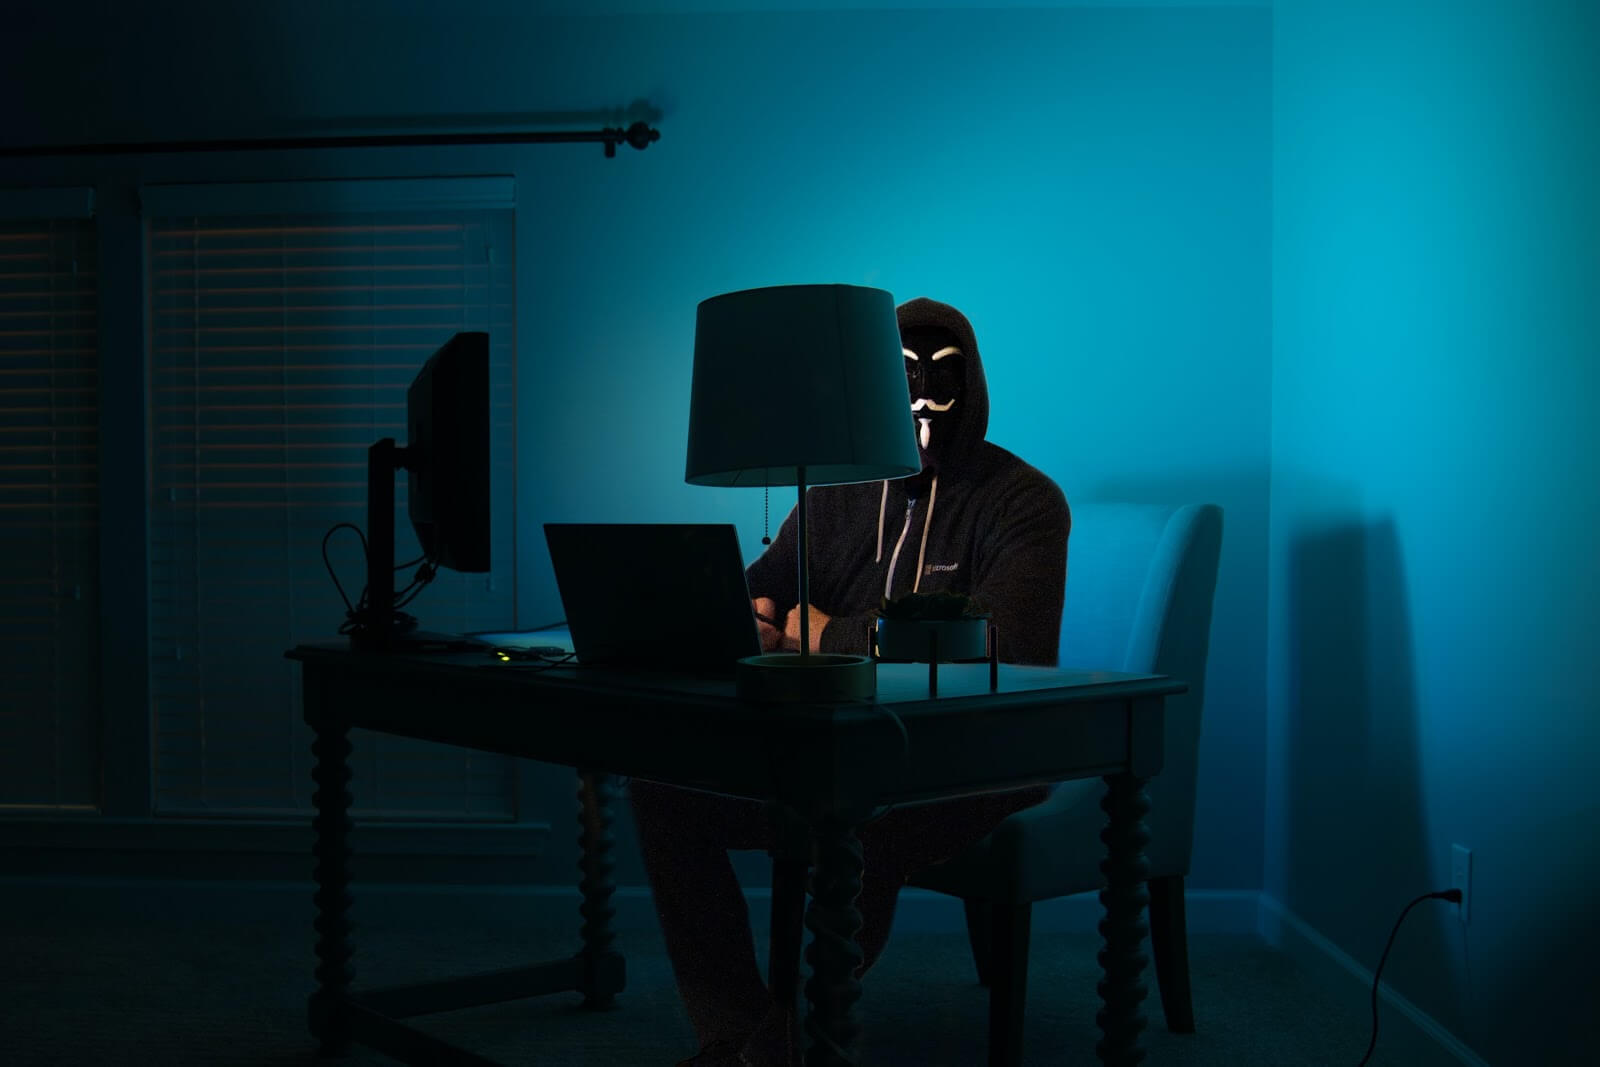 a man in a mask on a computer